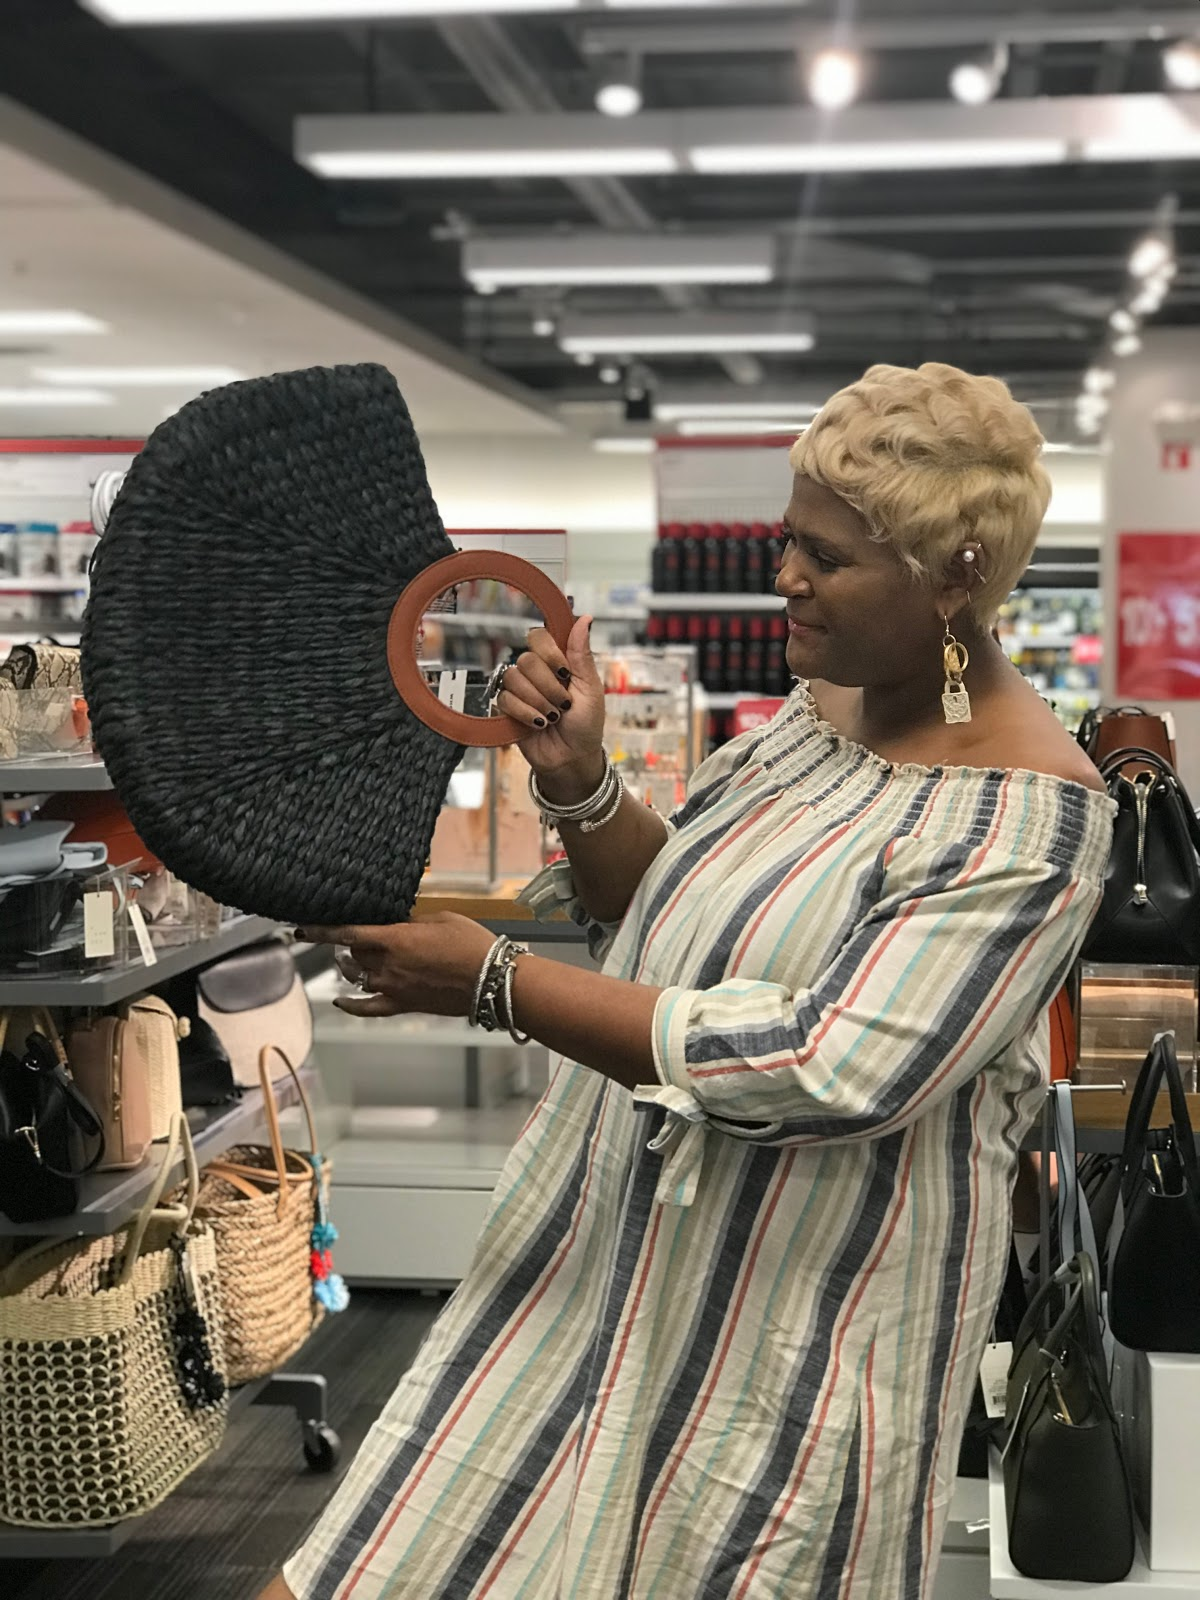 Image: Woman- Tangie Bell shopping at target for her style. Honey, I went shopping, and I almost couldn't stop, but I got myself a few cool digs.  So, yall, I have been working on my summer outfits, and I have been finding myself some cute pieces.